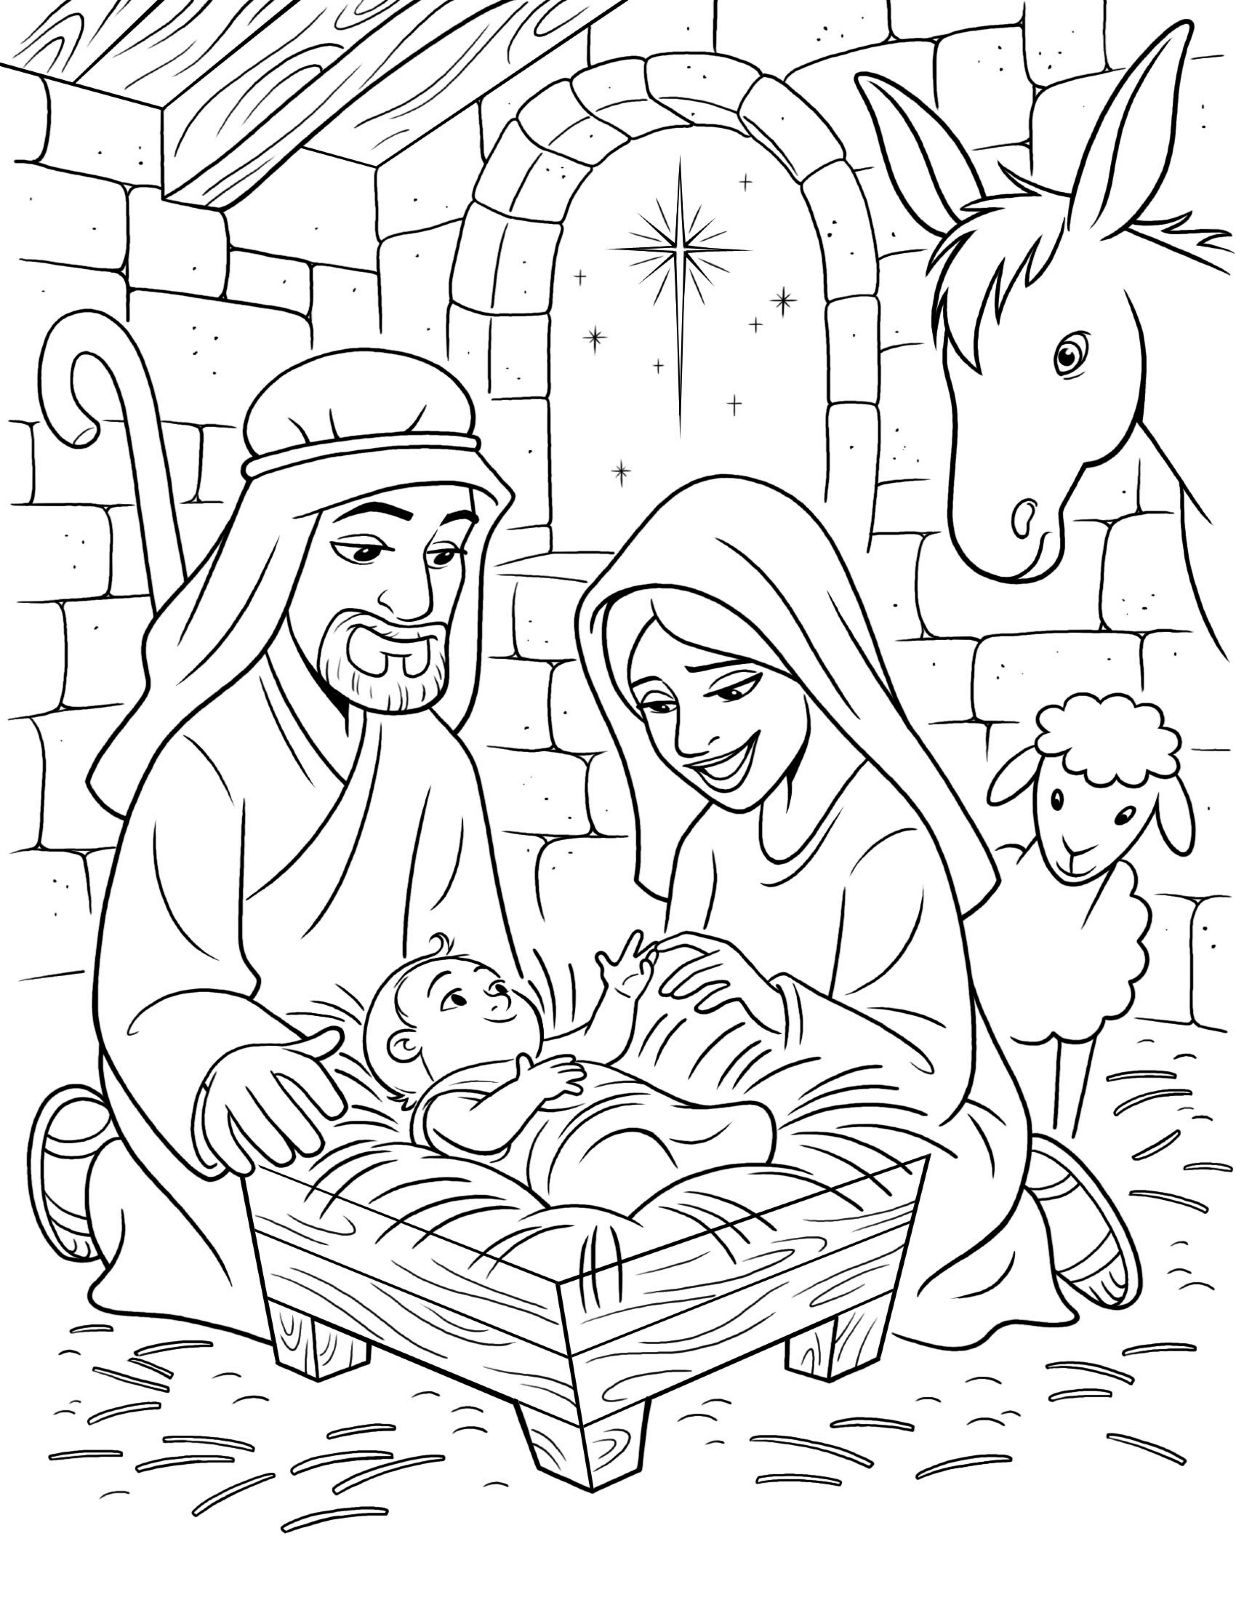 lds nativity coloring pages - Google Search | Nativity Jewelry ...